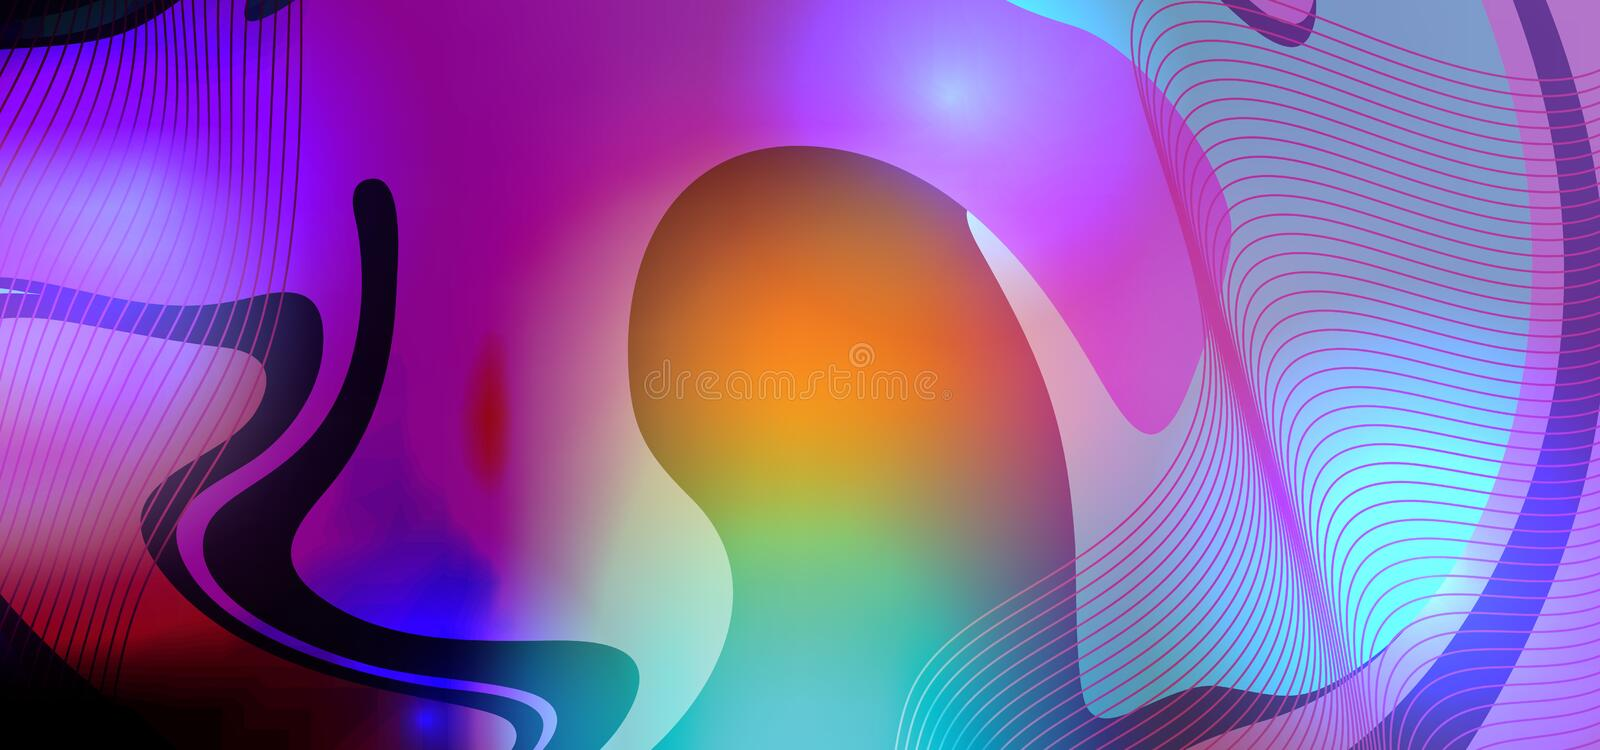 Neon creative fluid trendy futuristic abstract background vector illustration liquid colorful with light. 3d, shape, design, template, bright, modern, graphic royalty free illustration